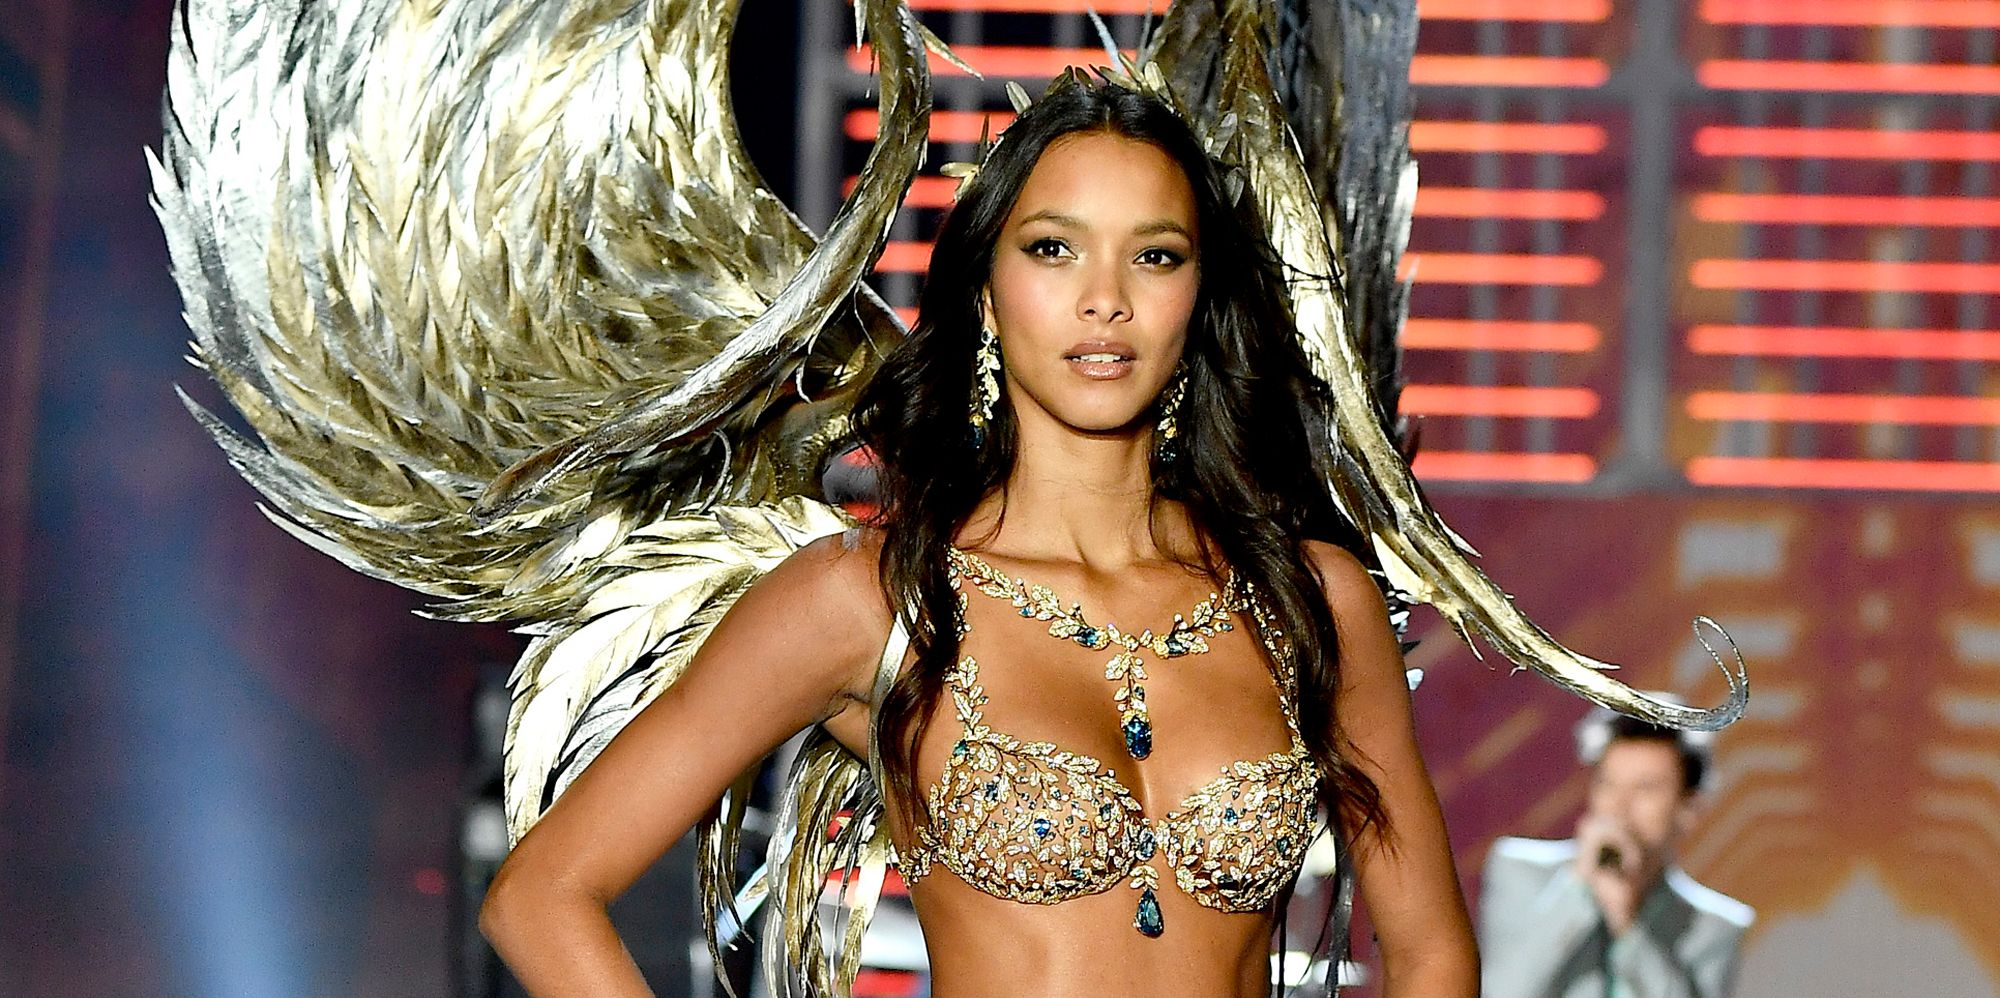 Kylie Jenner Vs Fashion Show >> Just 9 Pictures of Lais Ribeiro in the Fantasy Bra, Looking Flawless